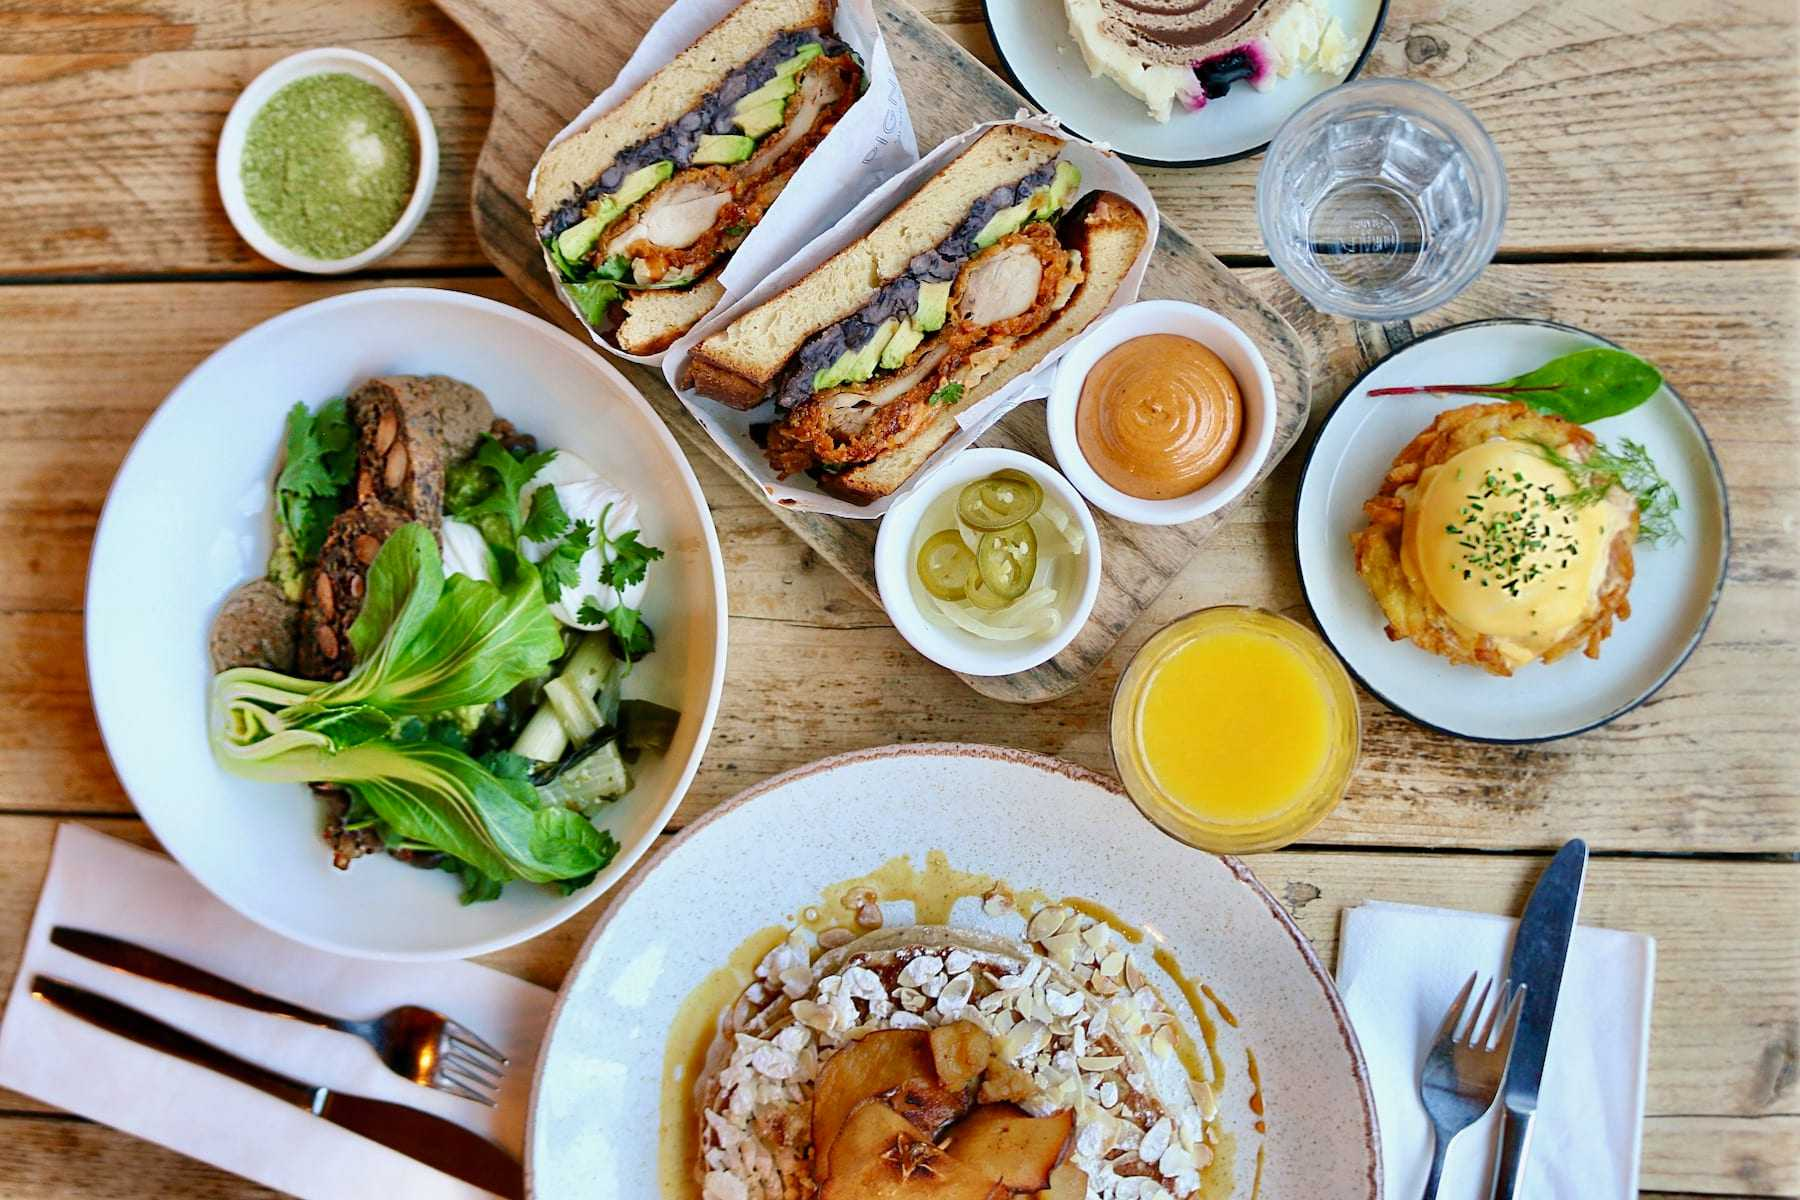 Amsterdam brunch restaurant Dignita is also a social enterprise, with delicious meals for a good cause. Interview by Table Sage